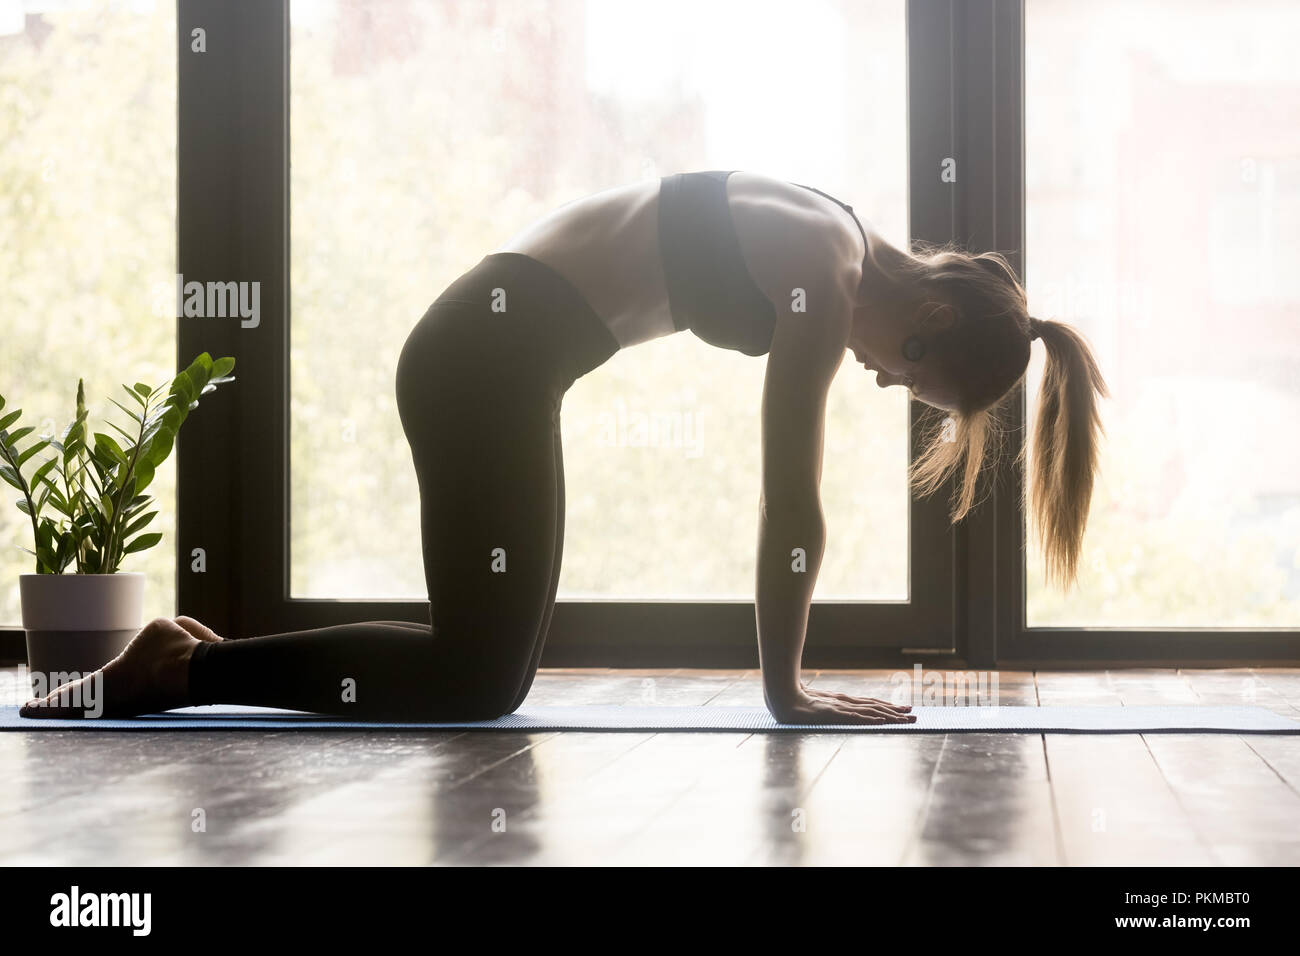 Young sporty woman doing pilates or yoga Marjaryasana pose - Stock Image